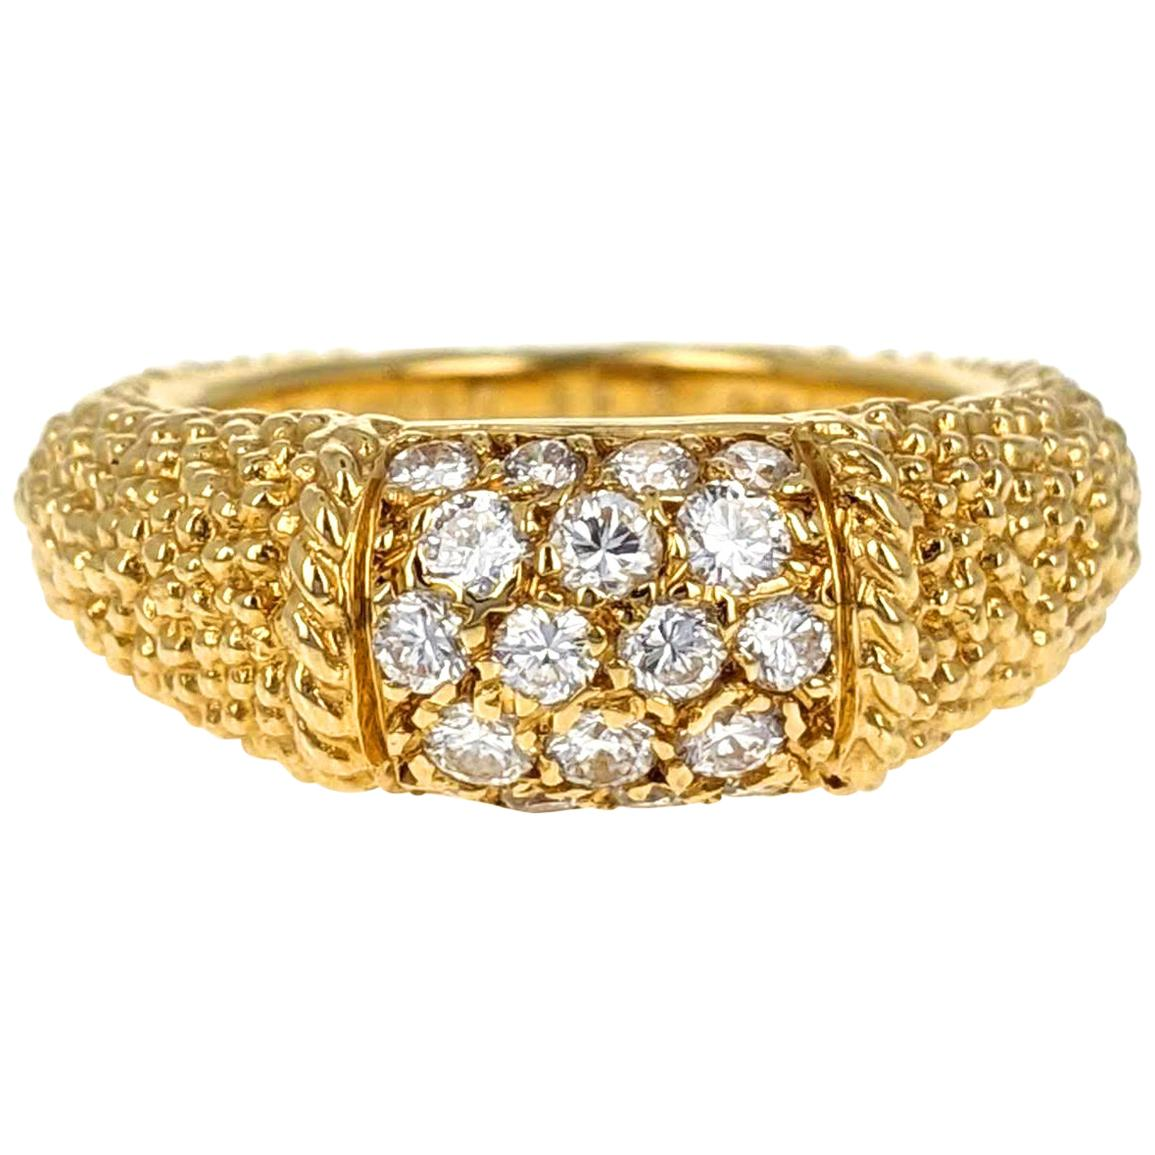 Van Cleef & Arpels Diamond and Textured Gold 'Philippine' Ring